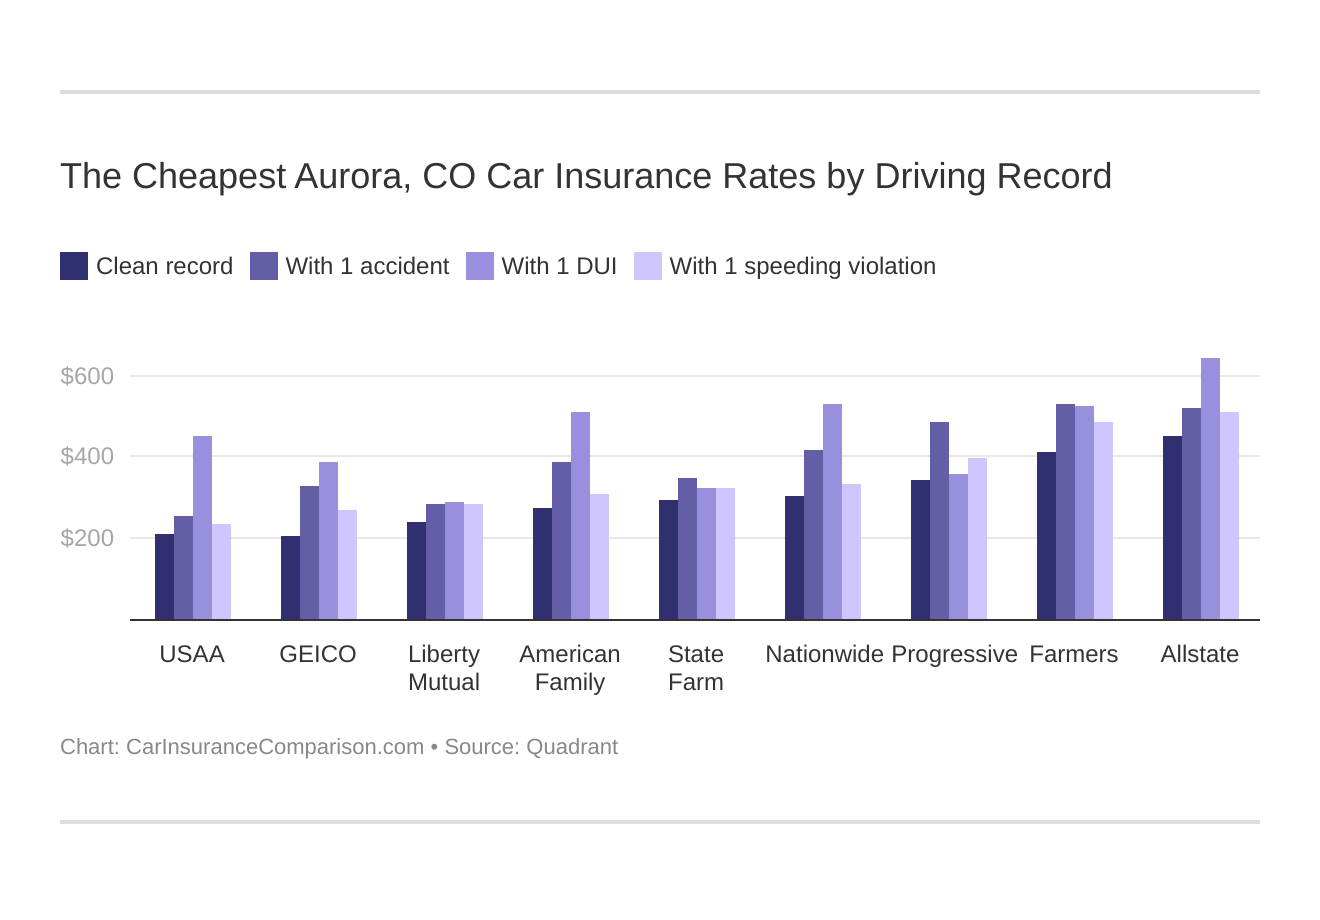 The Cheapest Aurora, CO Car Insurance Rates by Driving Record